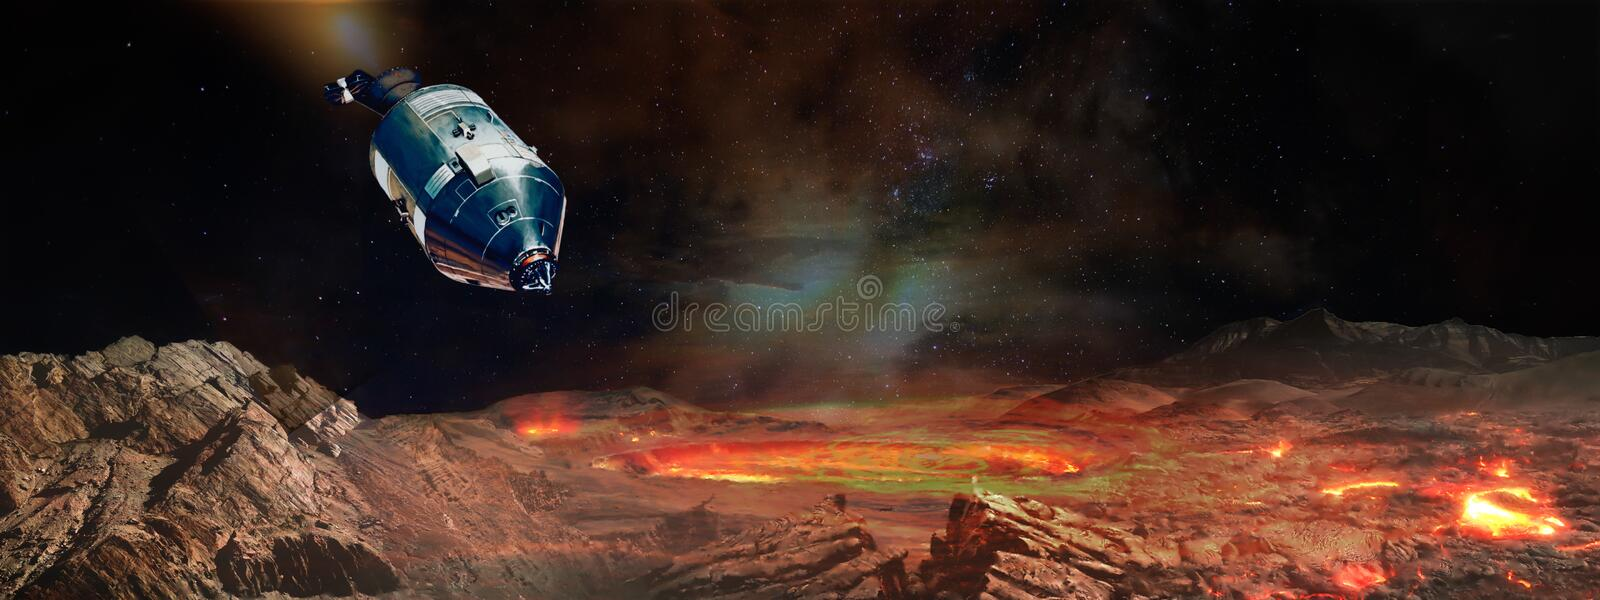 The spacecraft landing at the alien planet stock illustration